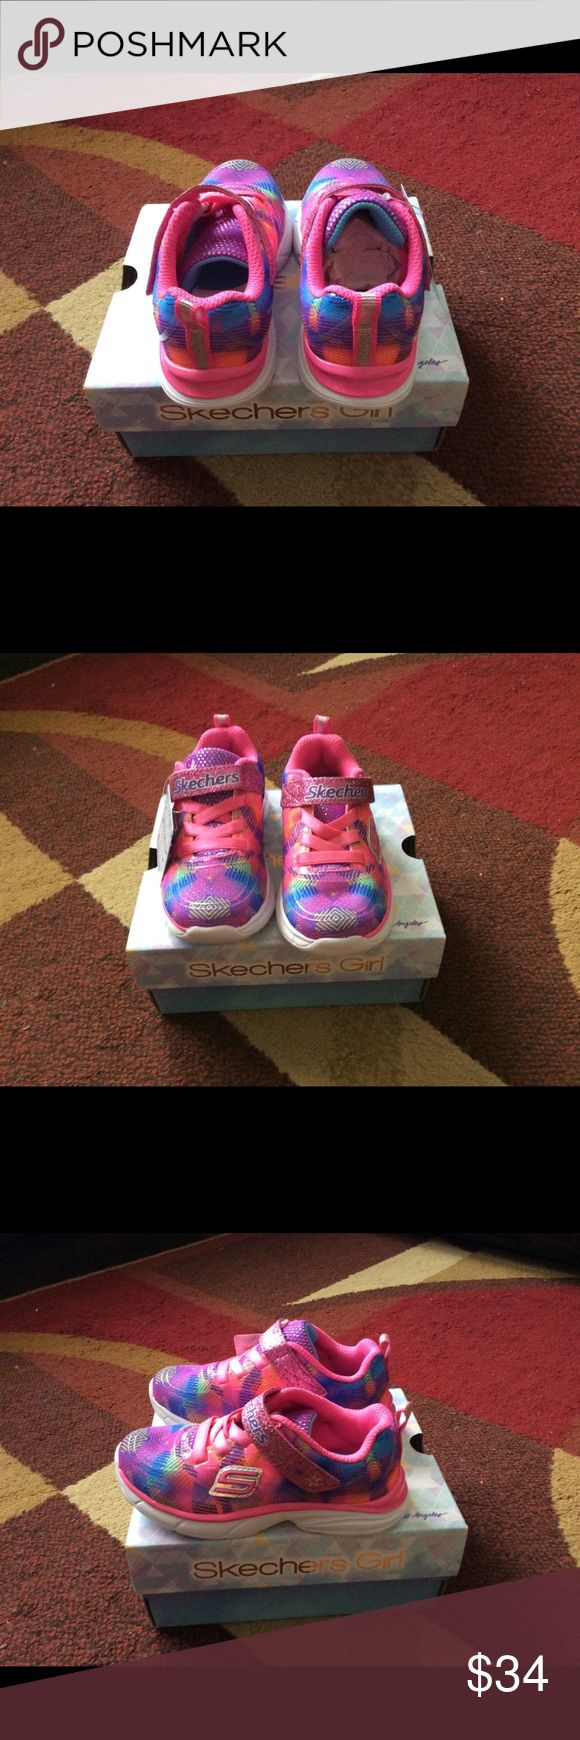 Girl/Toddler sketchers sneakers size 8 New in Box NWT & in box Girl/Toddler sketchers sneakers size 8 in multi color Velcro  From smoke & pet free home No holes & no stain Bundle for less & have a great day! sketchers Shoes Sneakers